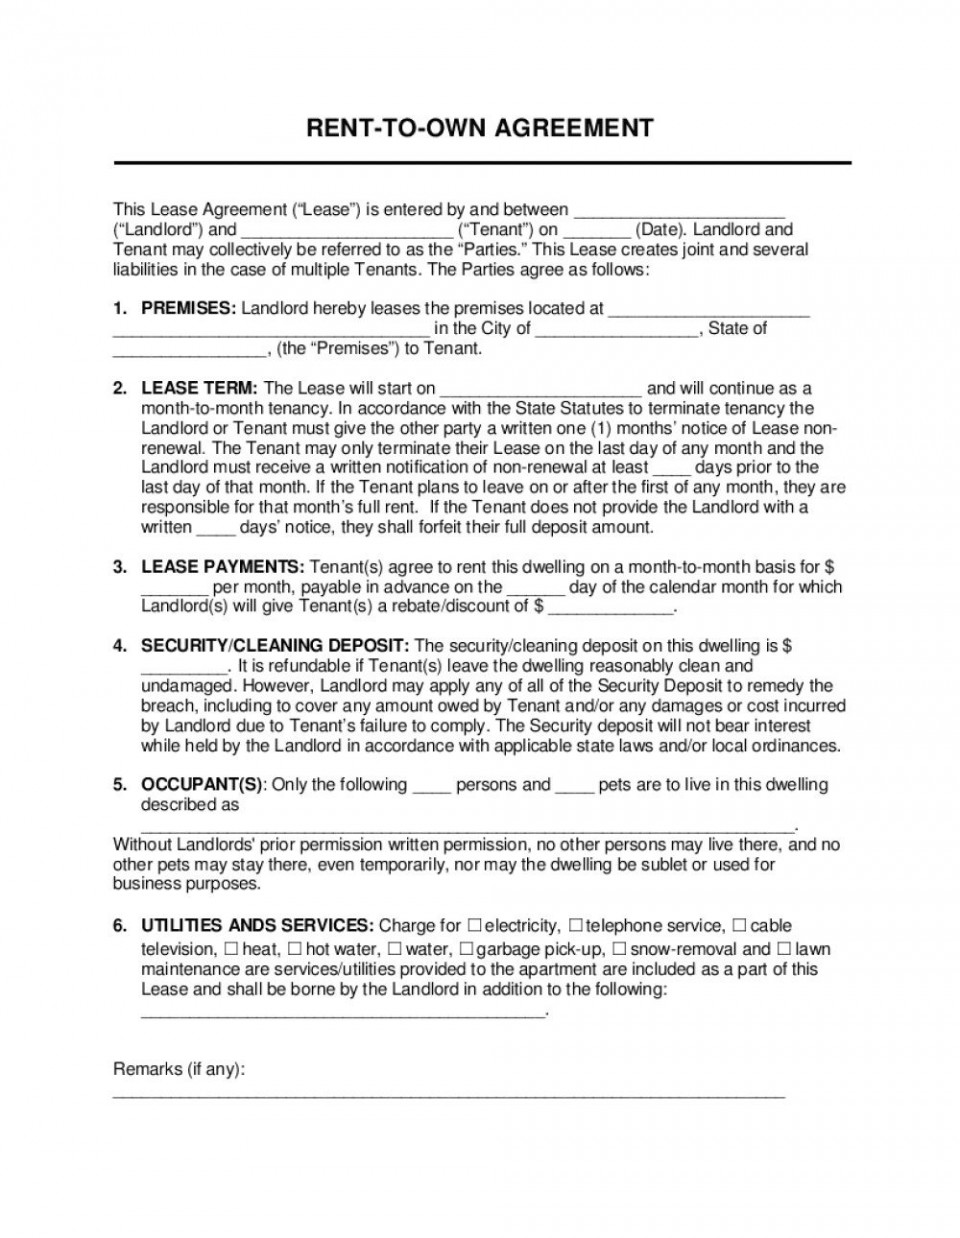 009 Archaicawful Rent To Own Agreement Template Concept  Contract Florida South Africa960